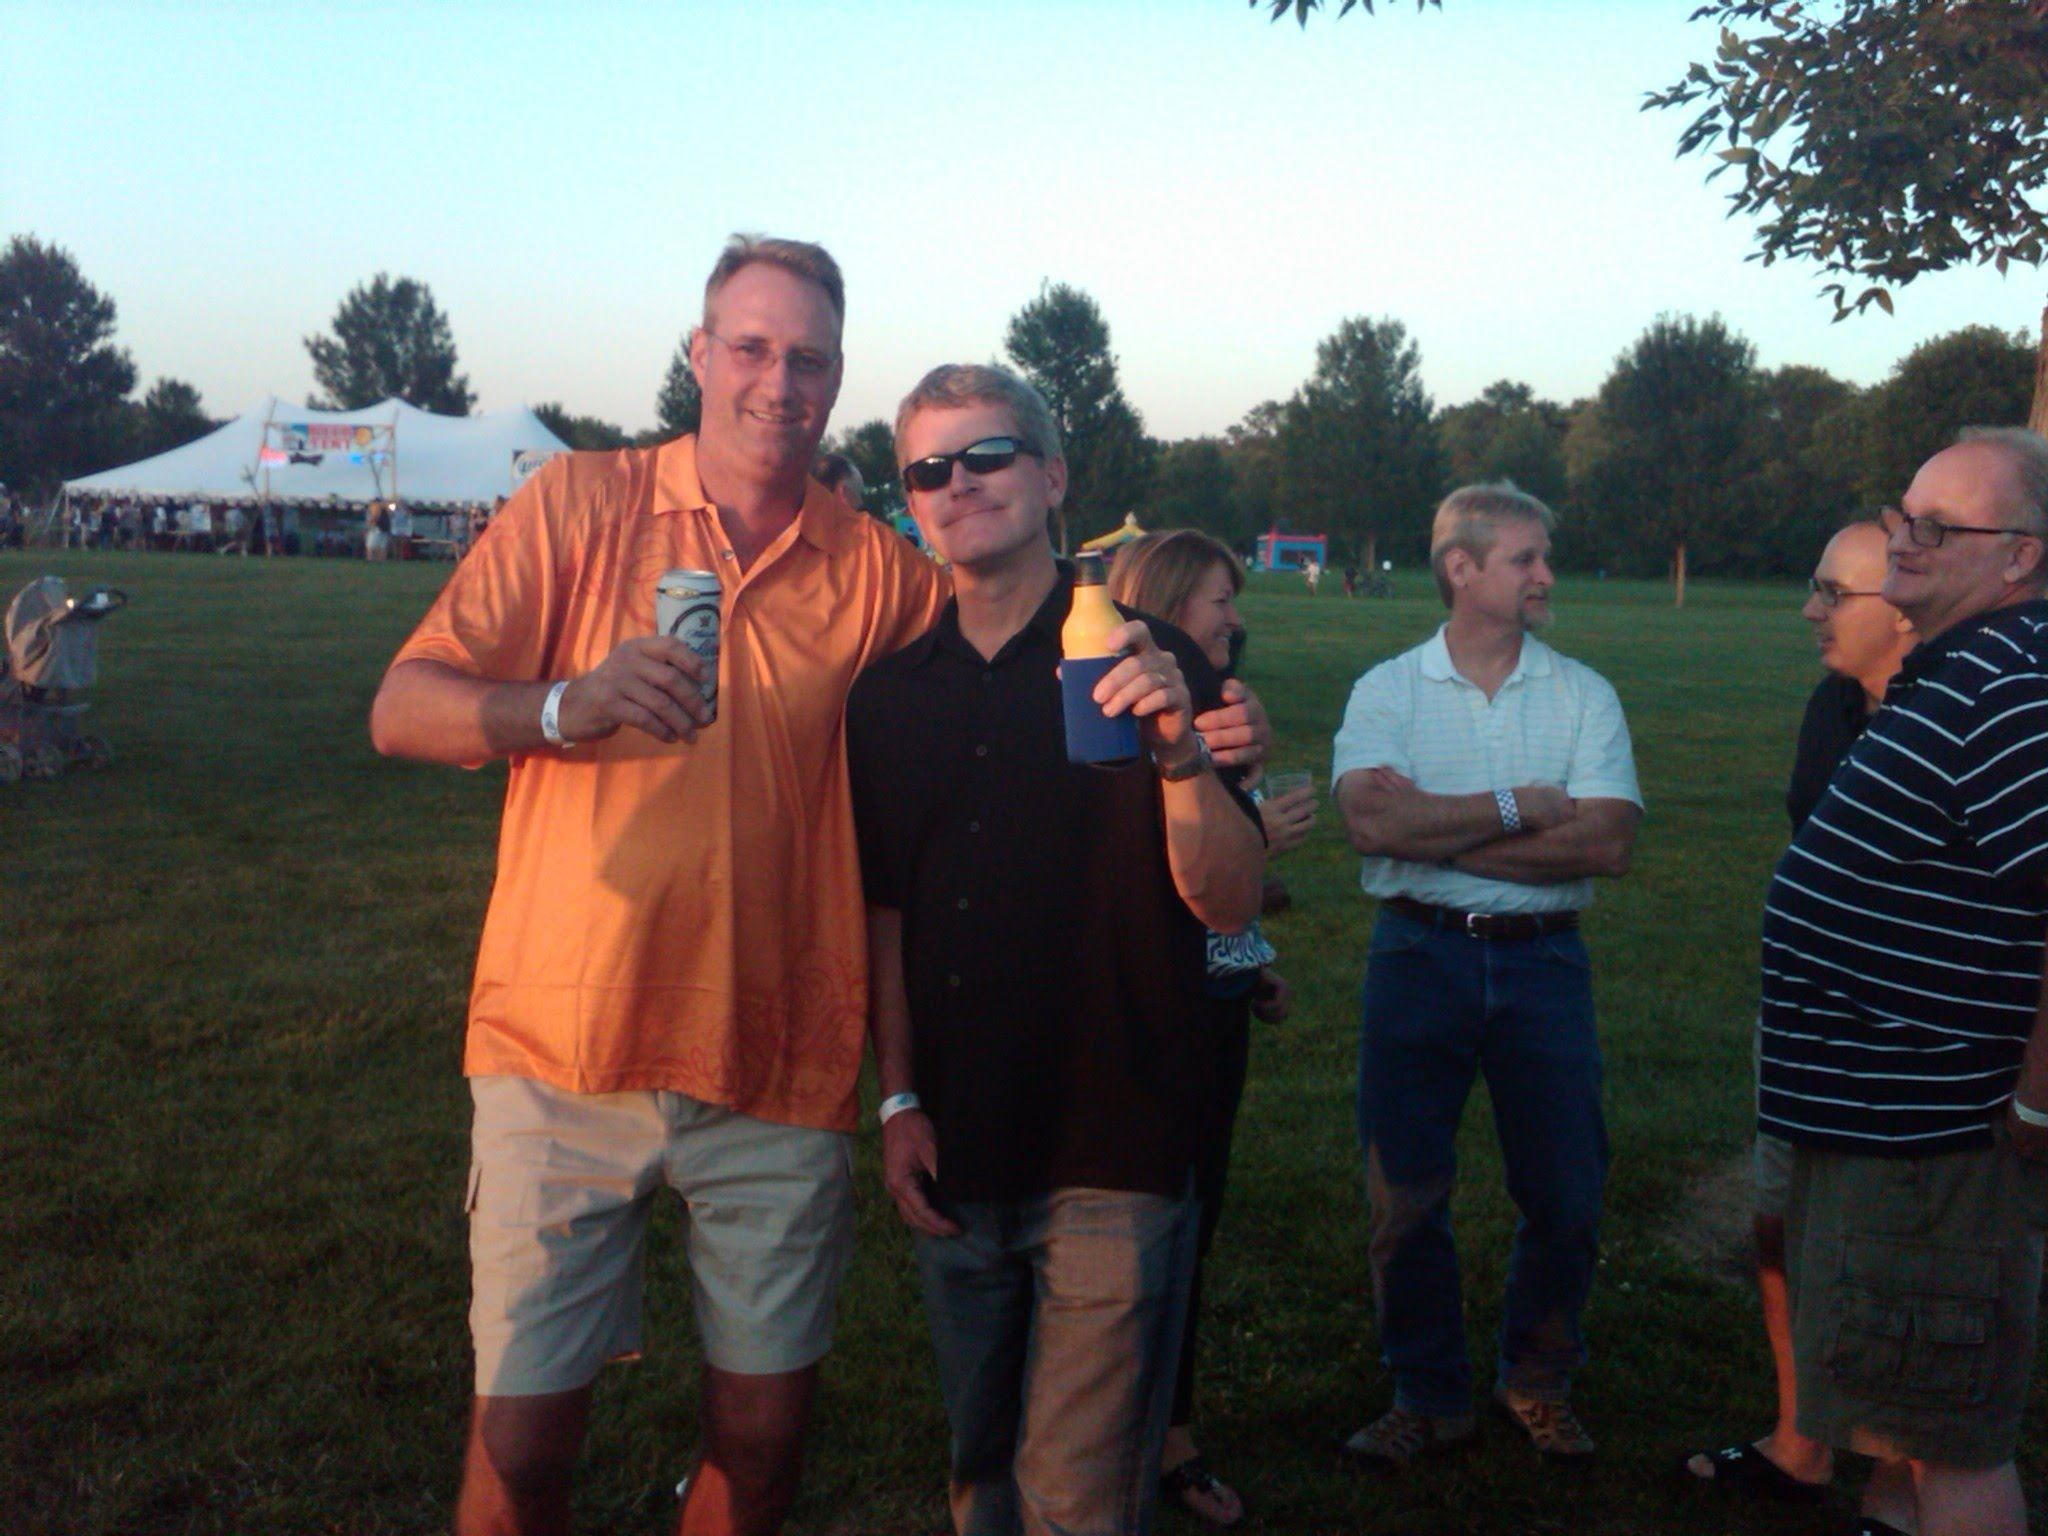 LHS Class of 1980 40th/41st Class Reunion and Golf Outing